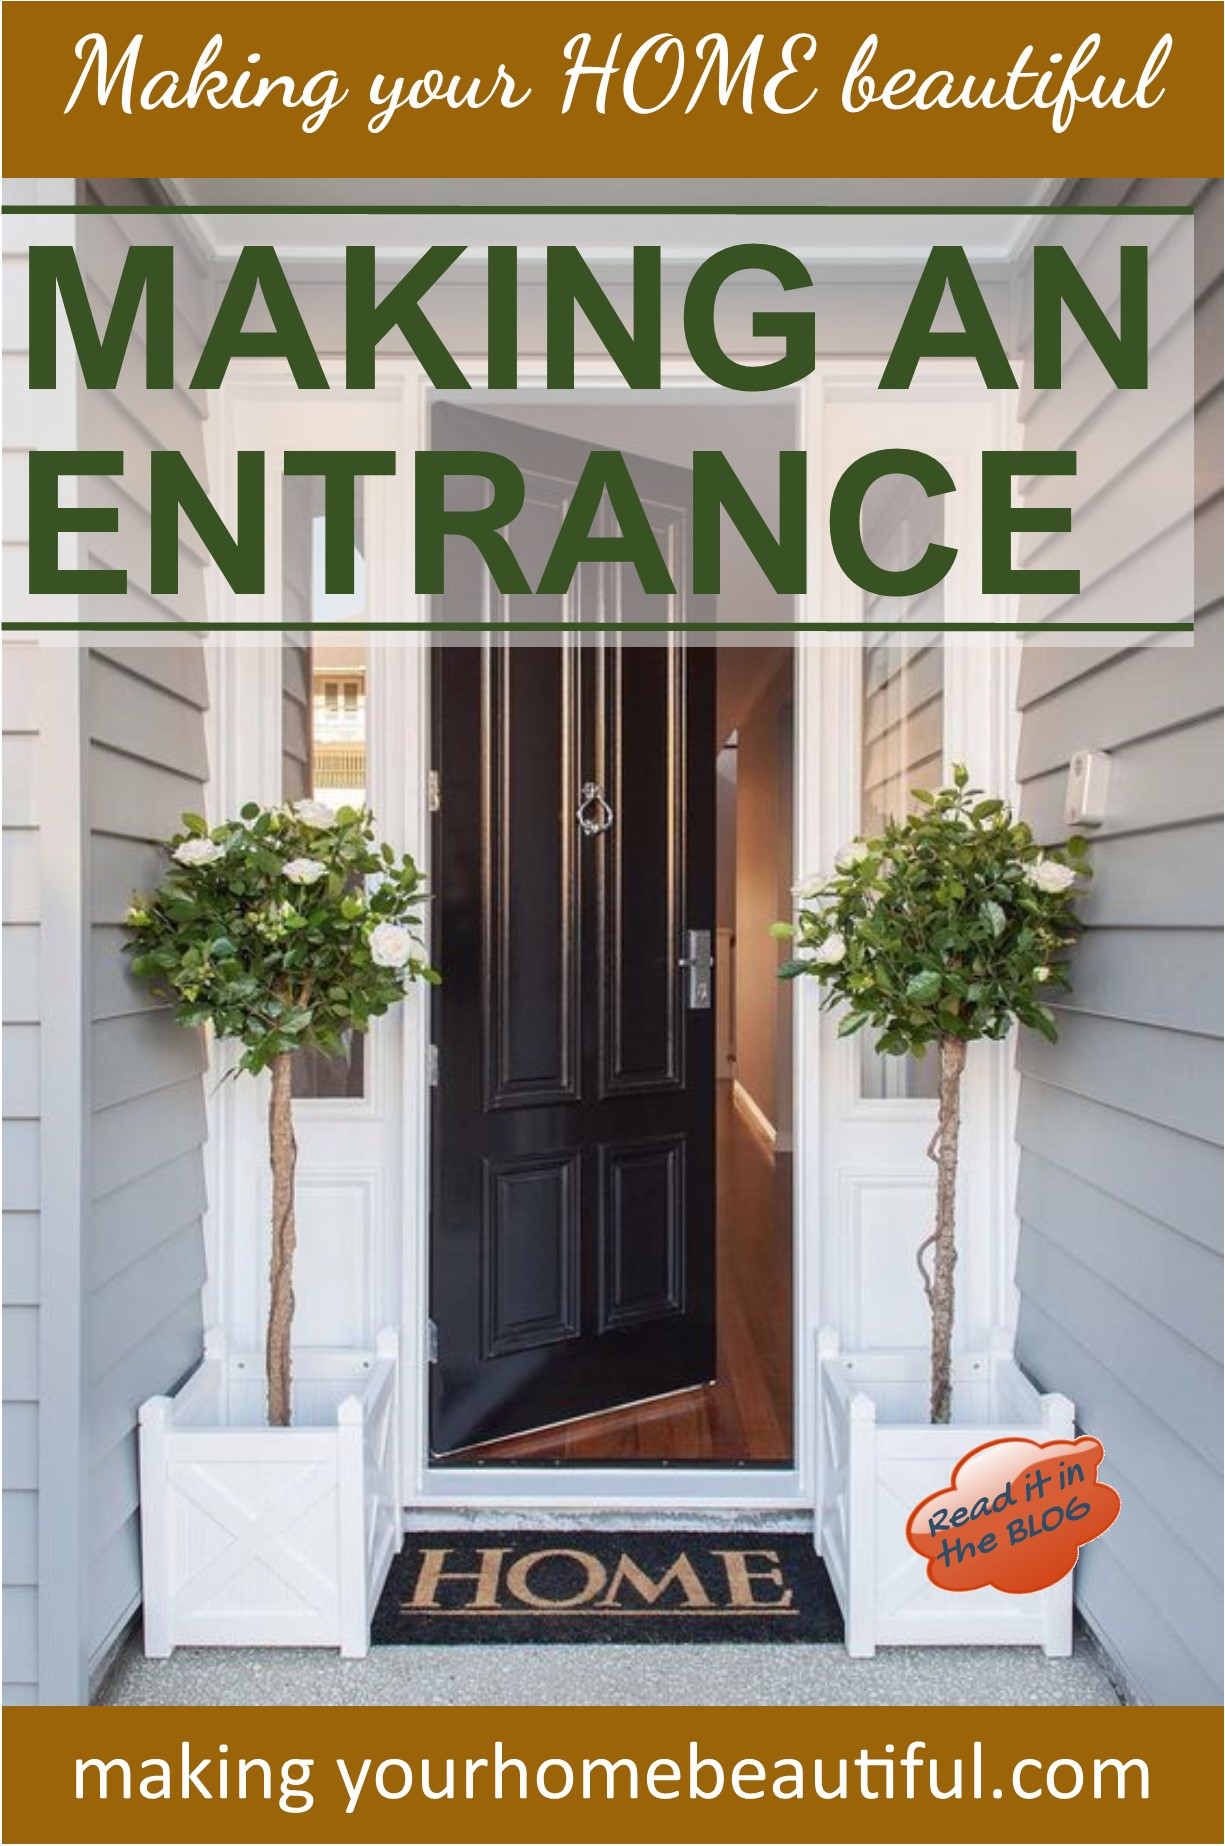 Making an Entrance 5 tips to follow Making your HOME beautiful